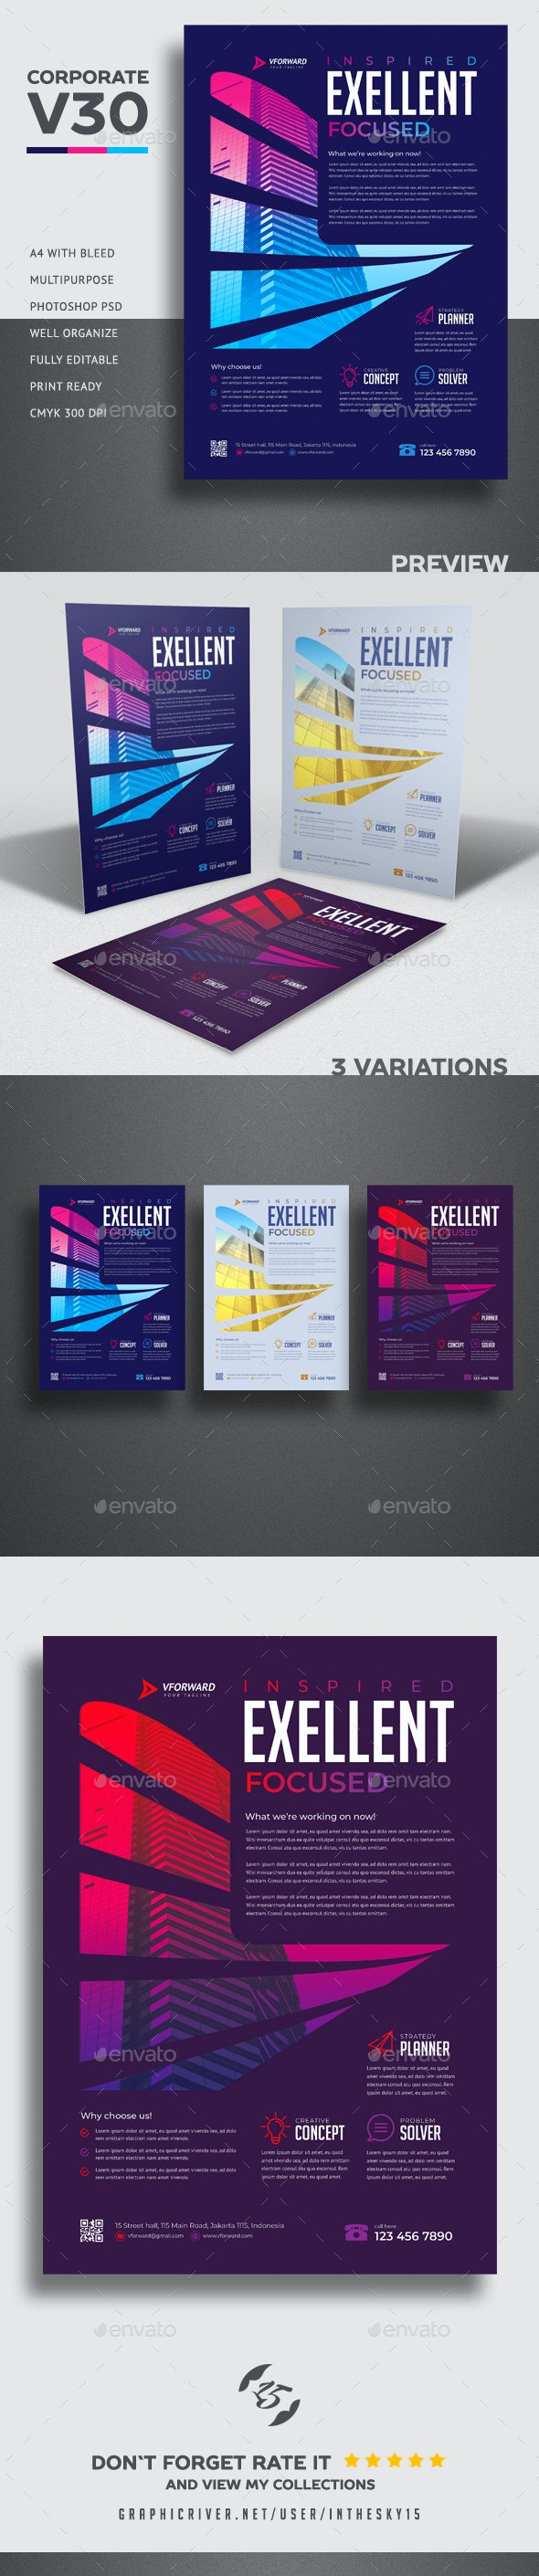 Corporate V30 Flyer - Corporate Flyers